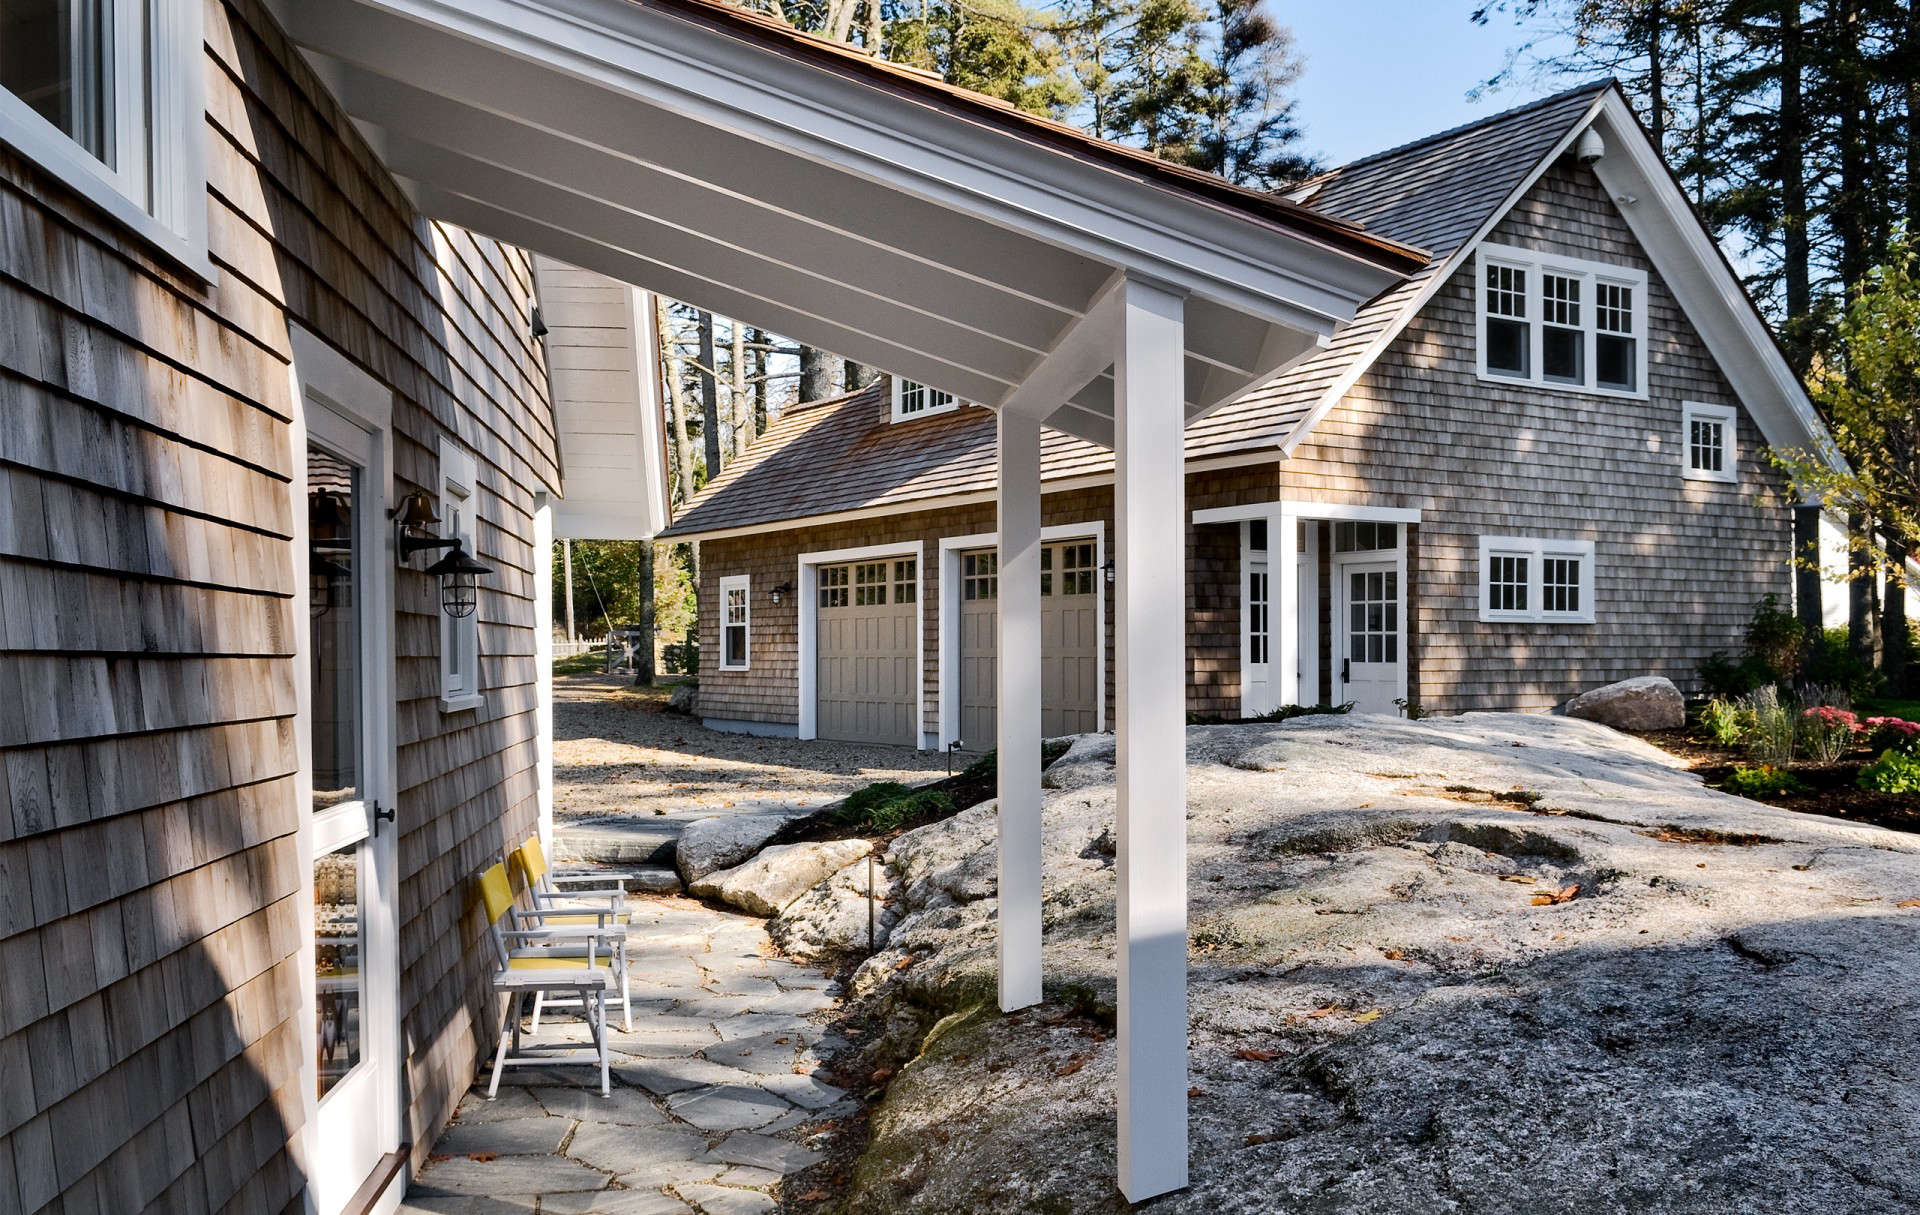 portland, maine–based whitten architects designed an expansion to a \19\15 sh 11